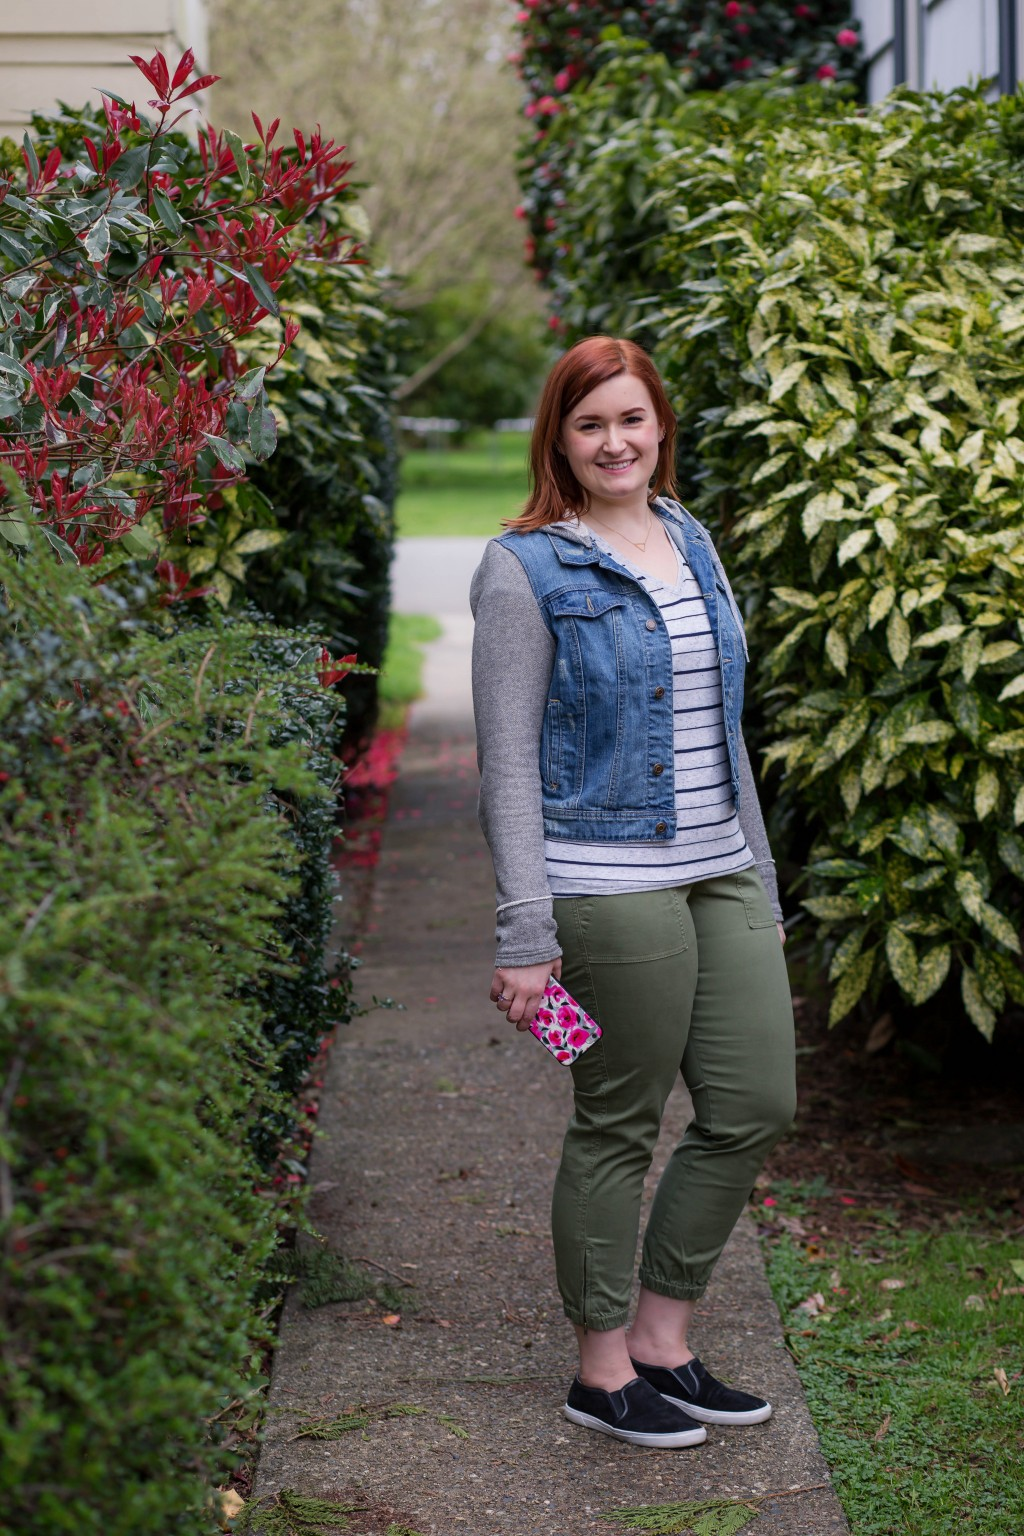 1 - Kate Retherford of All Things Kate in Snohomish, Washington, casual summer style